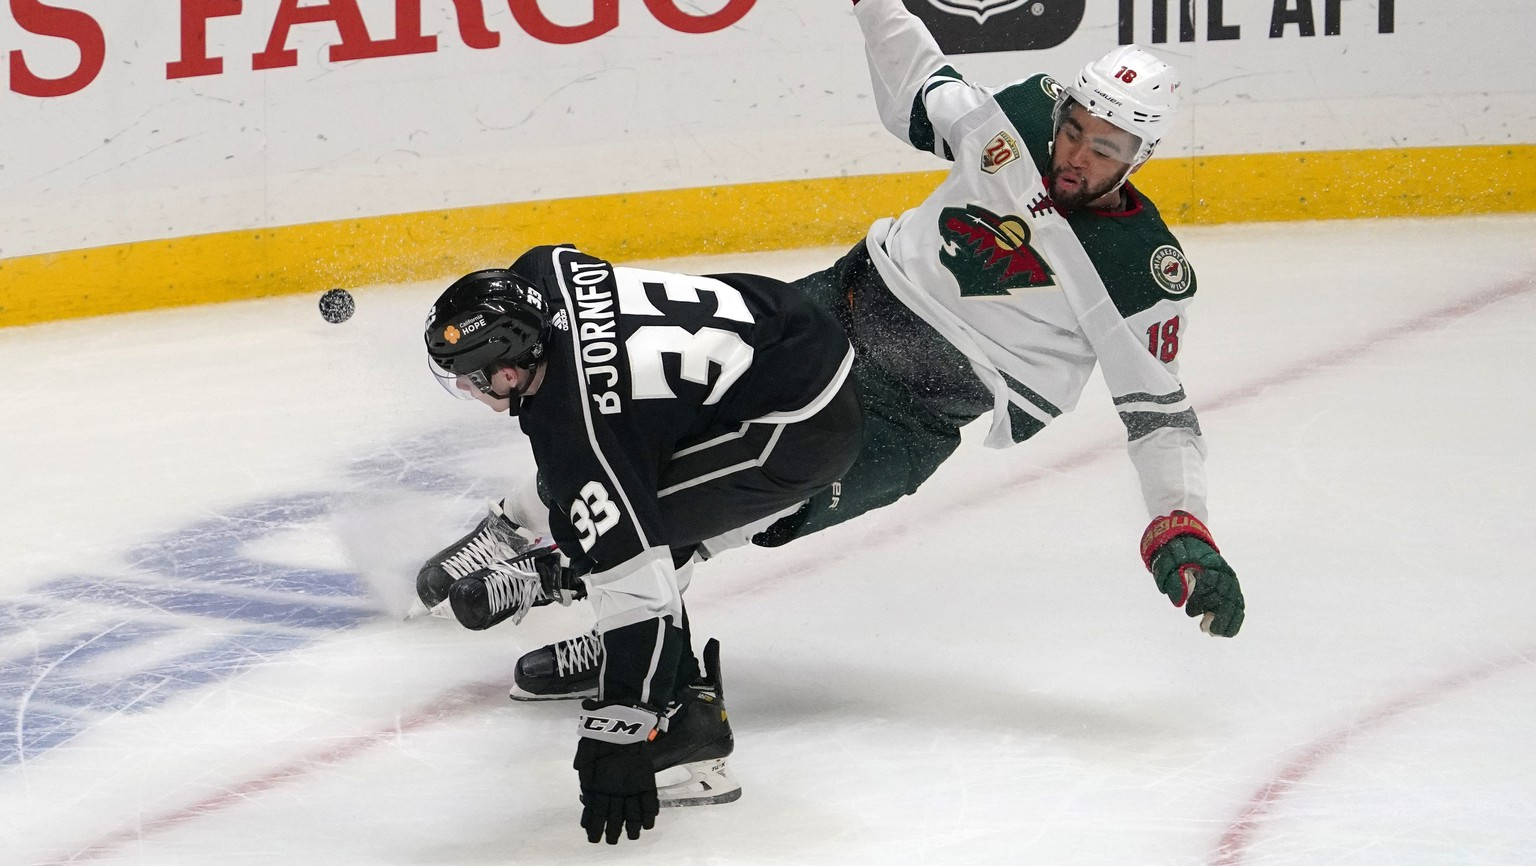 Los Angeles Kings defenseman Tobias Bjornfot, left, and Minnesota Wild left wing Jordan Greenway fall to the ice during the second period of an NHL hockey game Tuesday, Feb. 16, 2021, in Los Angeles. (AP Photo/Mark J. Terrill) Tobias Bjornfot,Jordan Greenway